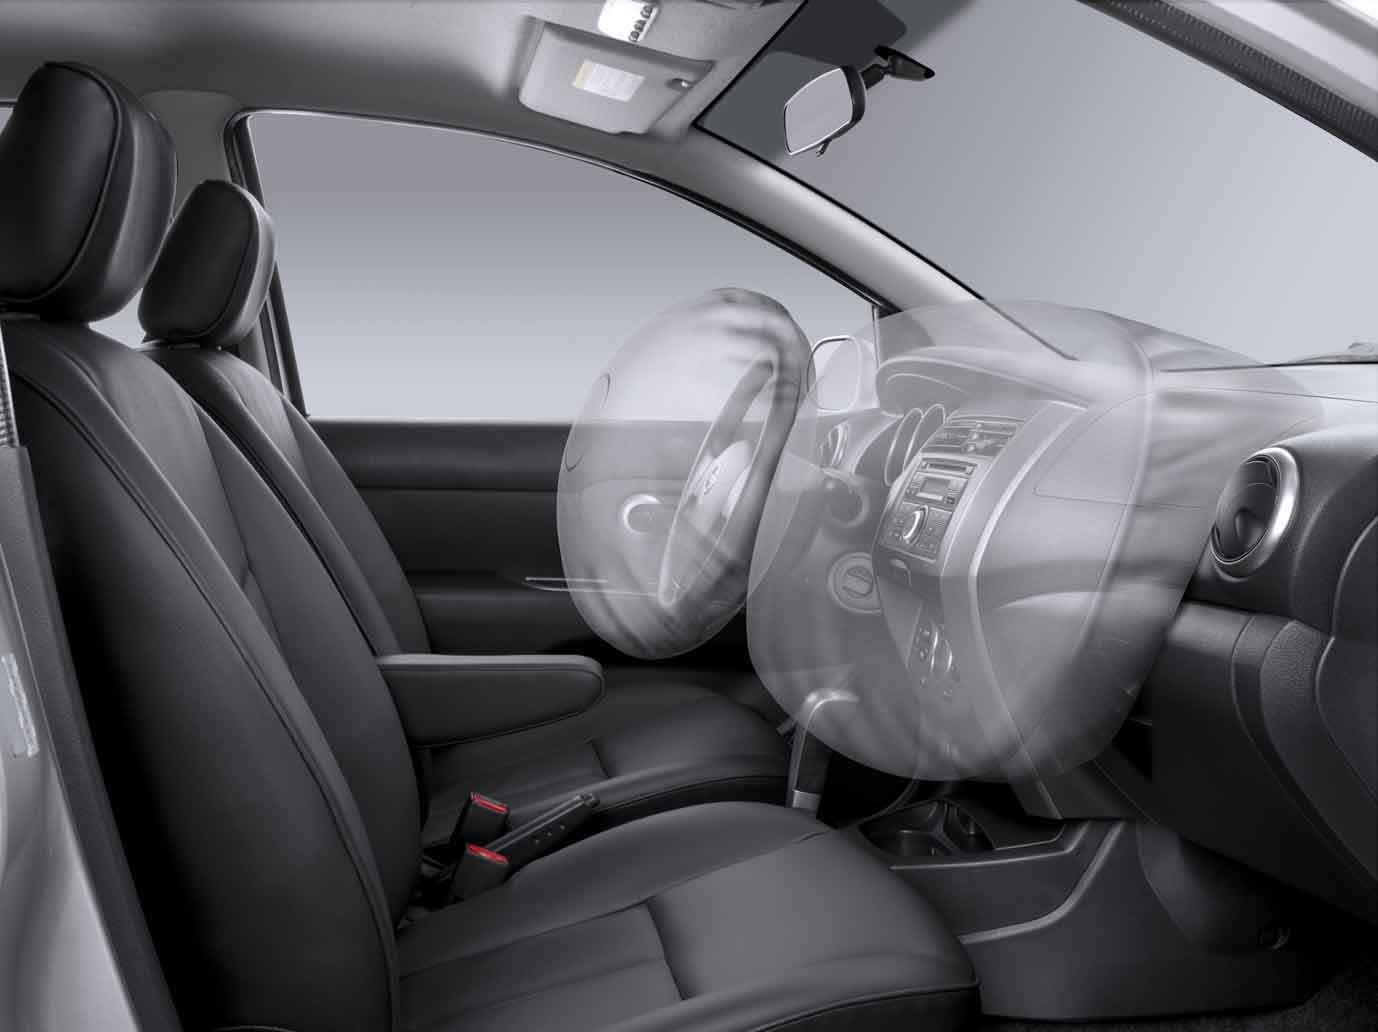 novo Nissan Livina 2014 air bag